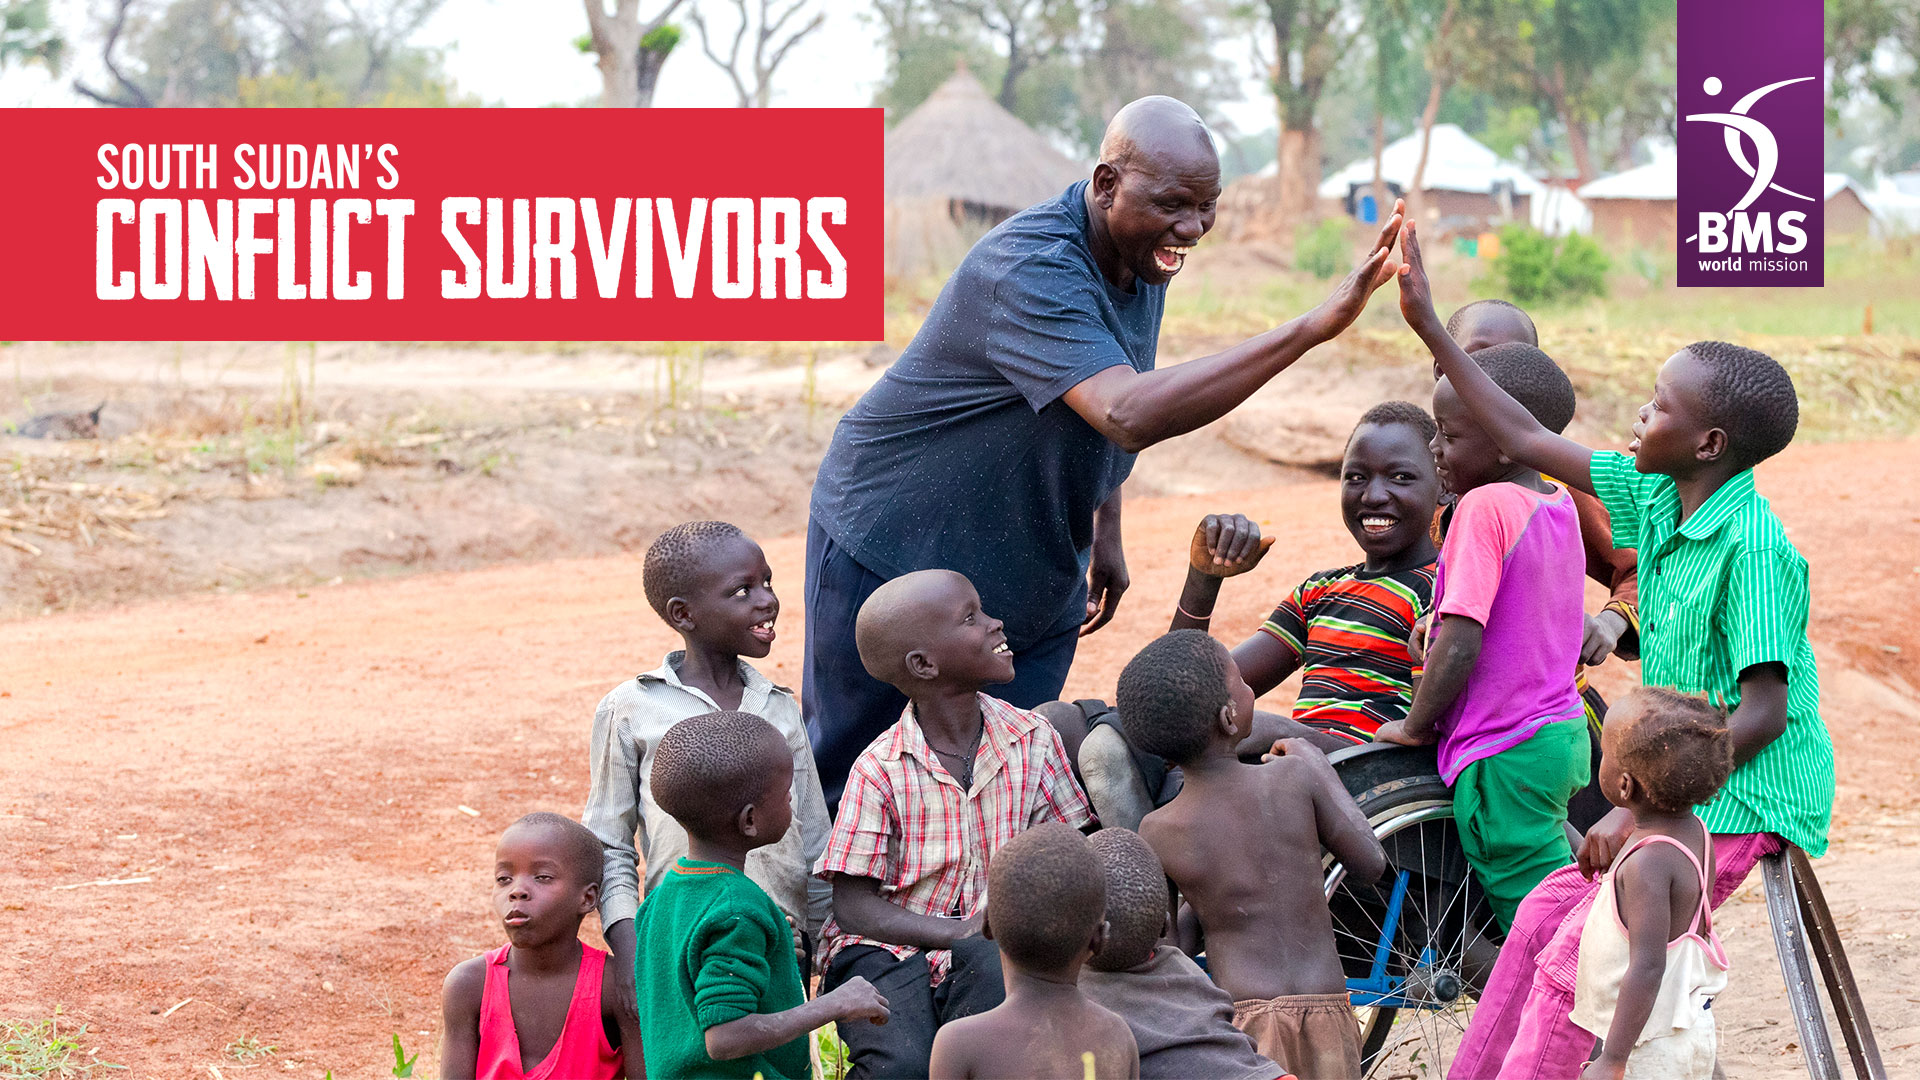 A local worker high fives with refugee children in Uganda, with the title South Sudan's Conflict Survivors and the BMS logo